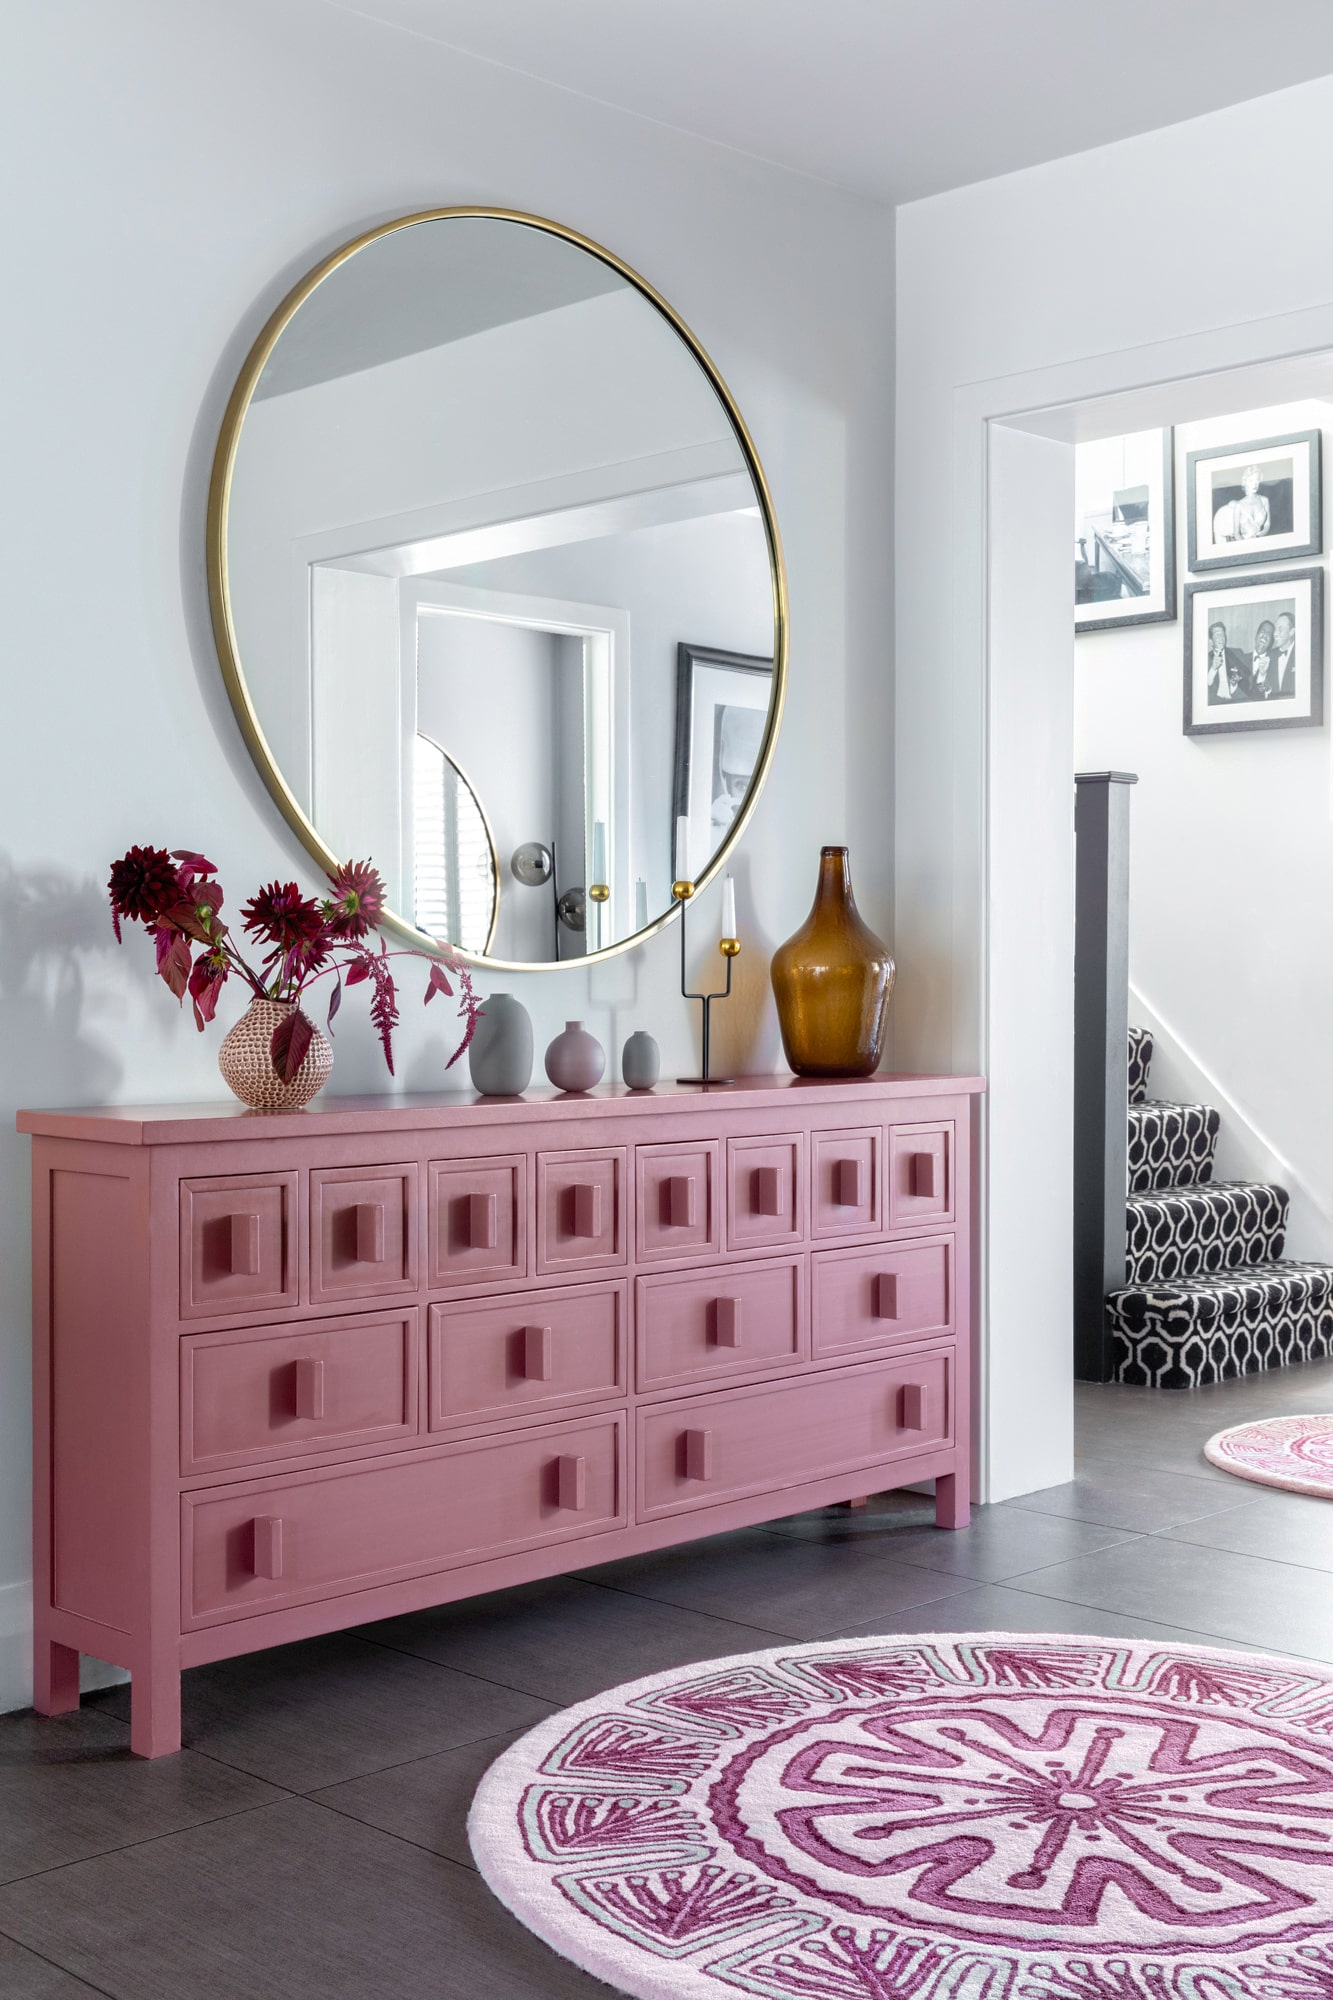 Interior photo of a living room: pink cabinet with accessories on top; pink round rug; round mirror on the wall